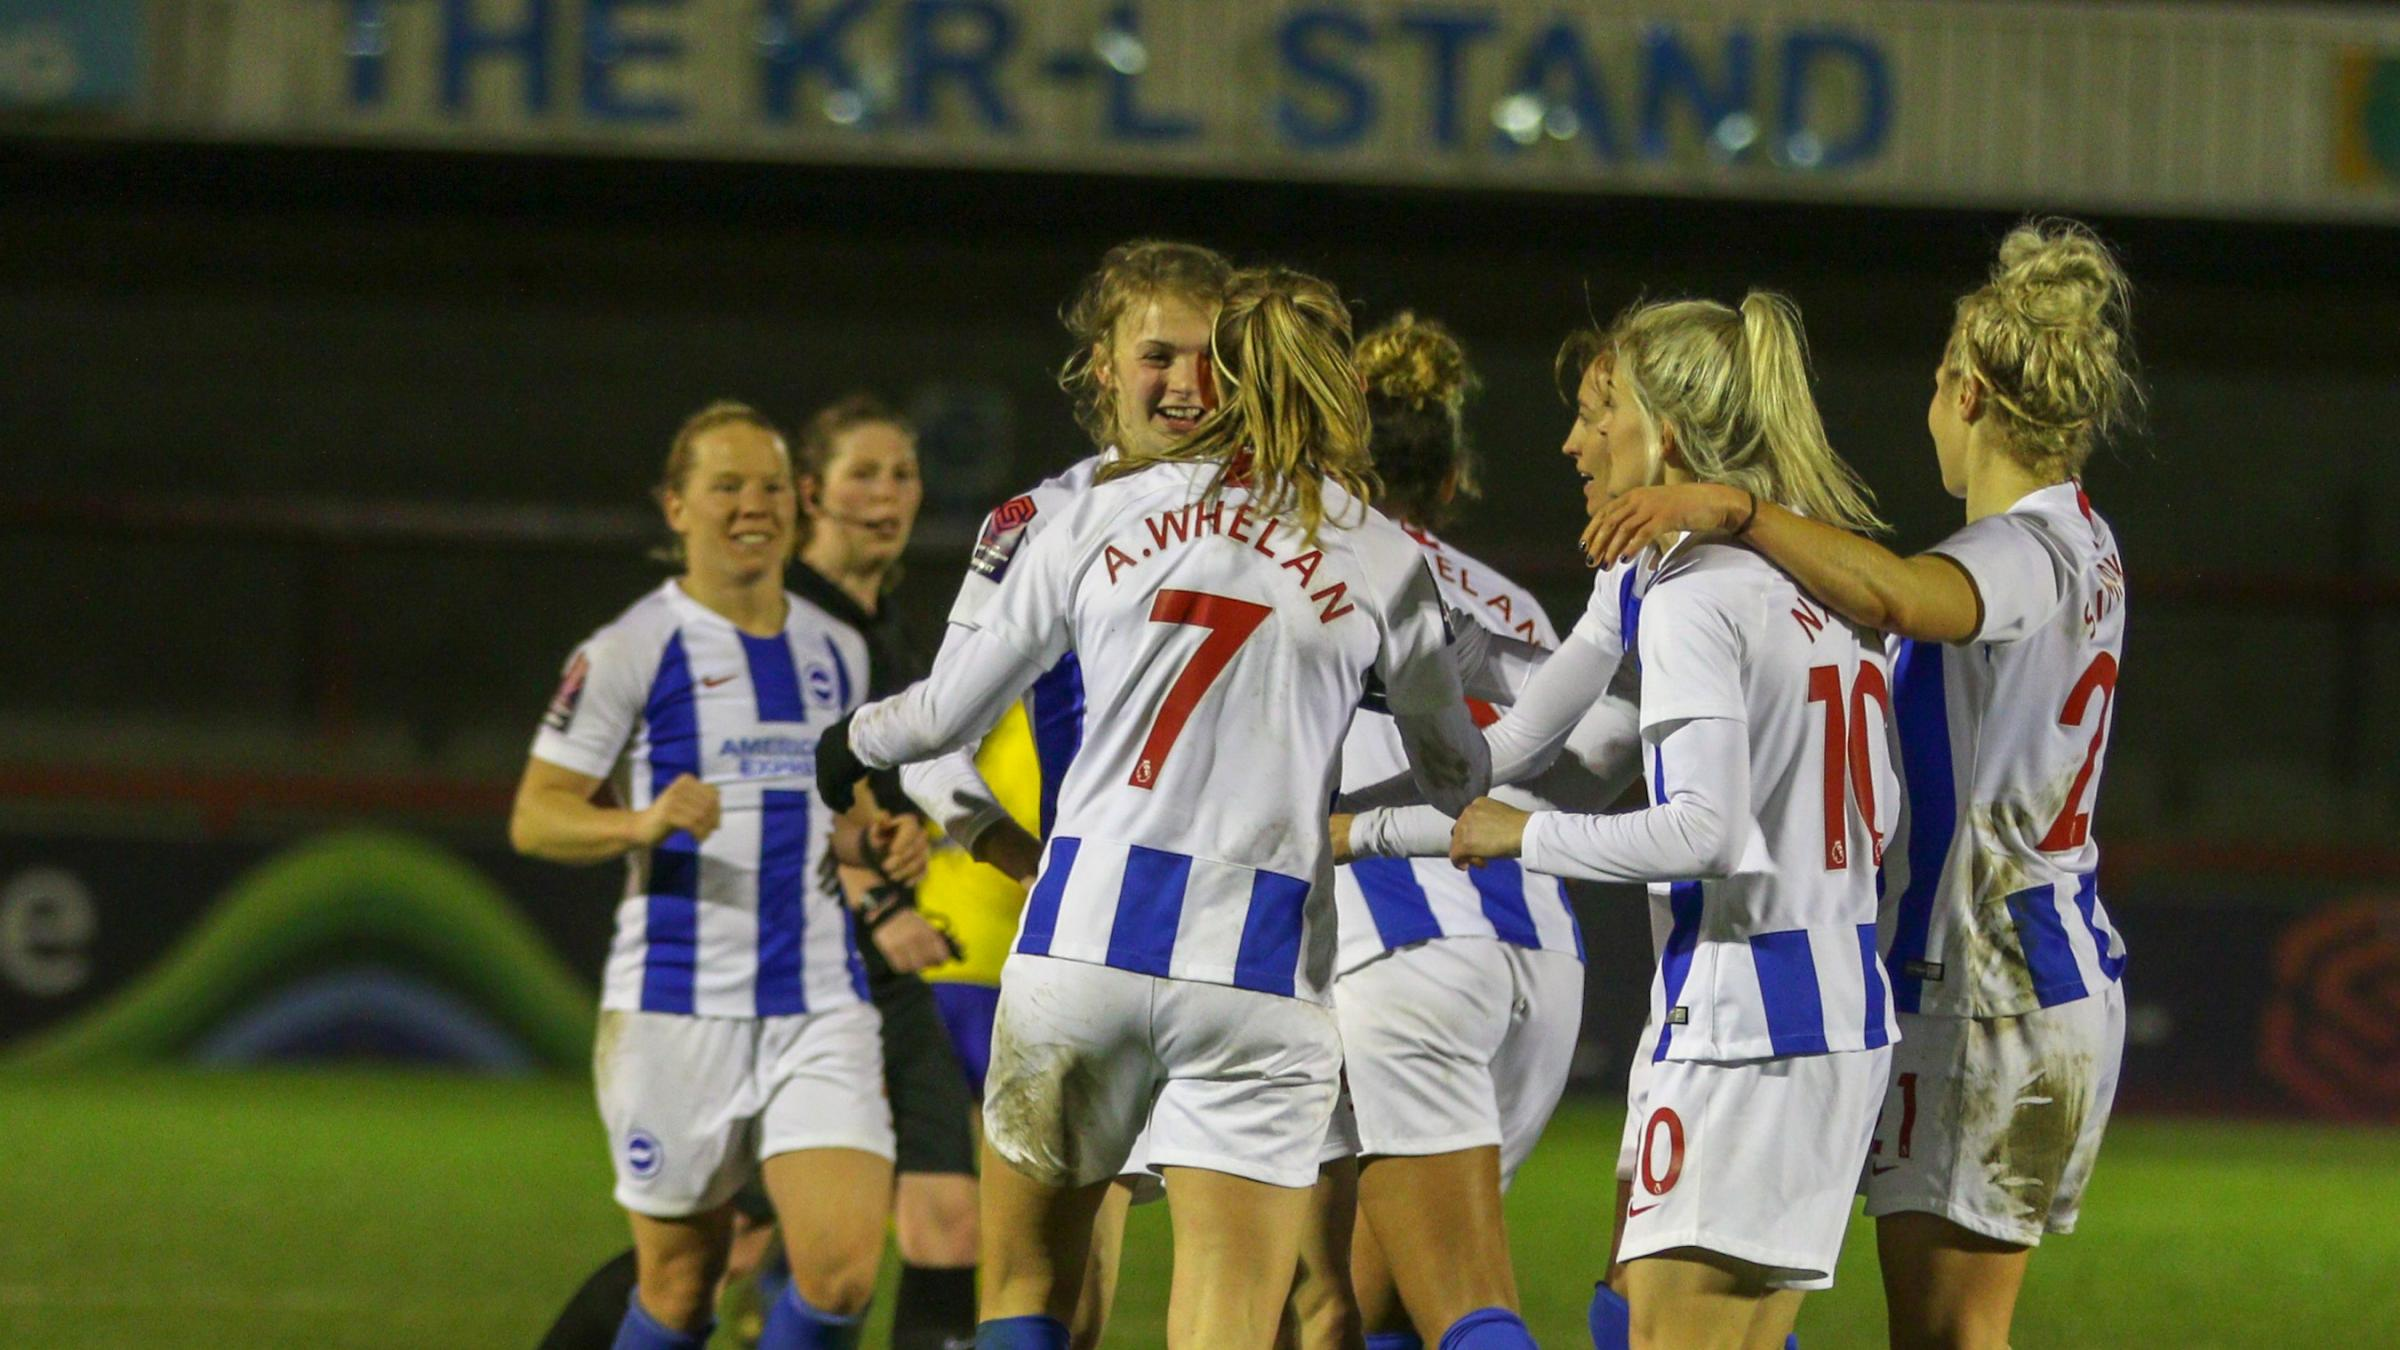 Albion closing in on WSL safety after best result yet